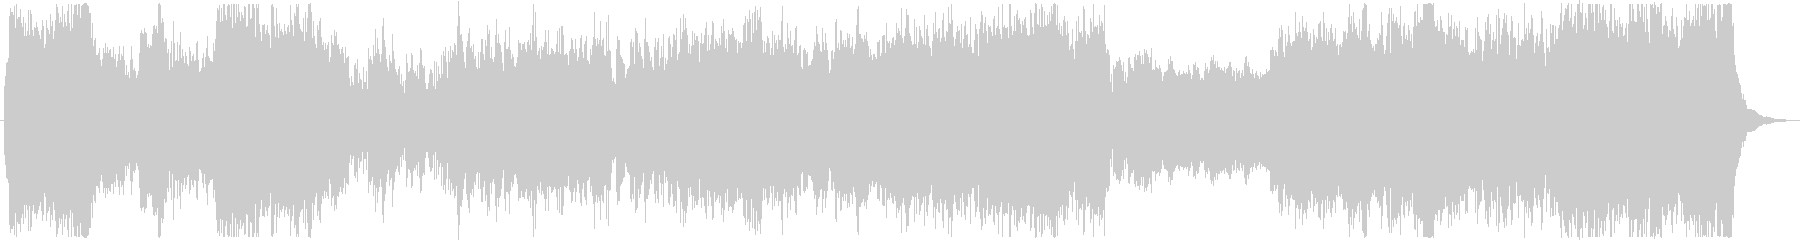 Robot animation style BGM of magnificent scale feeling's unreproduced waveform